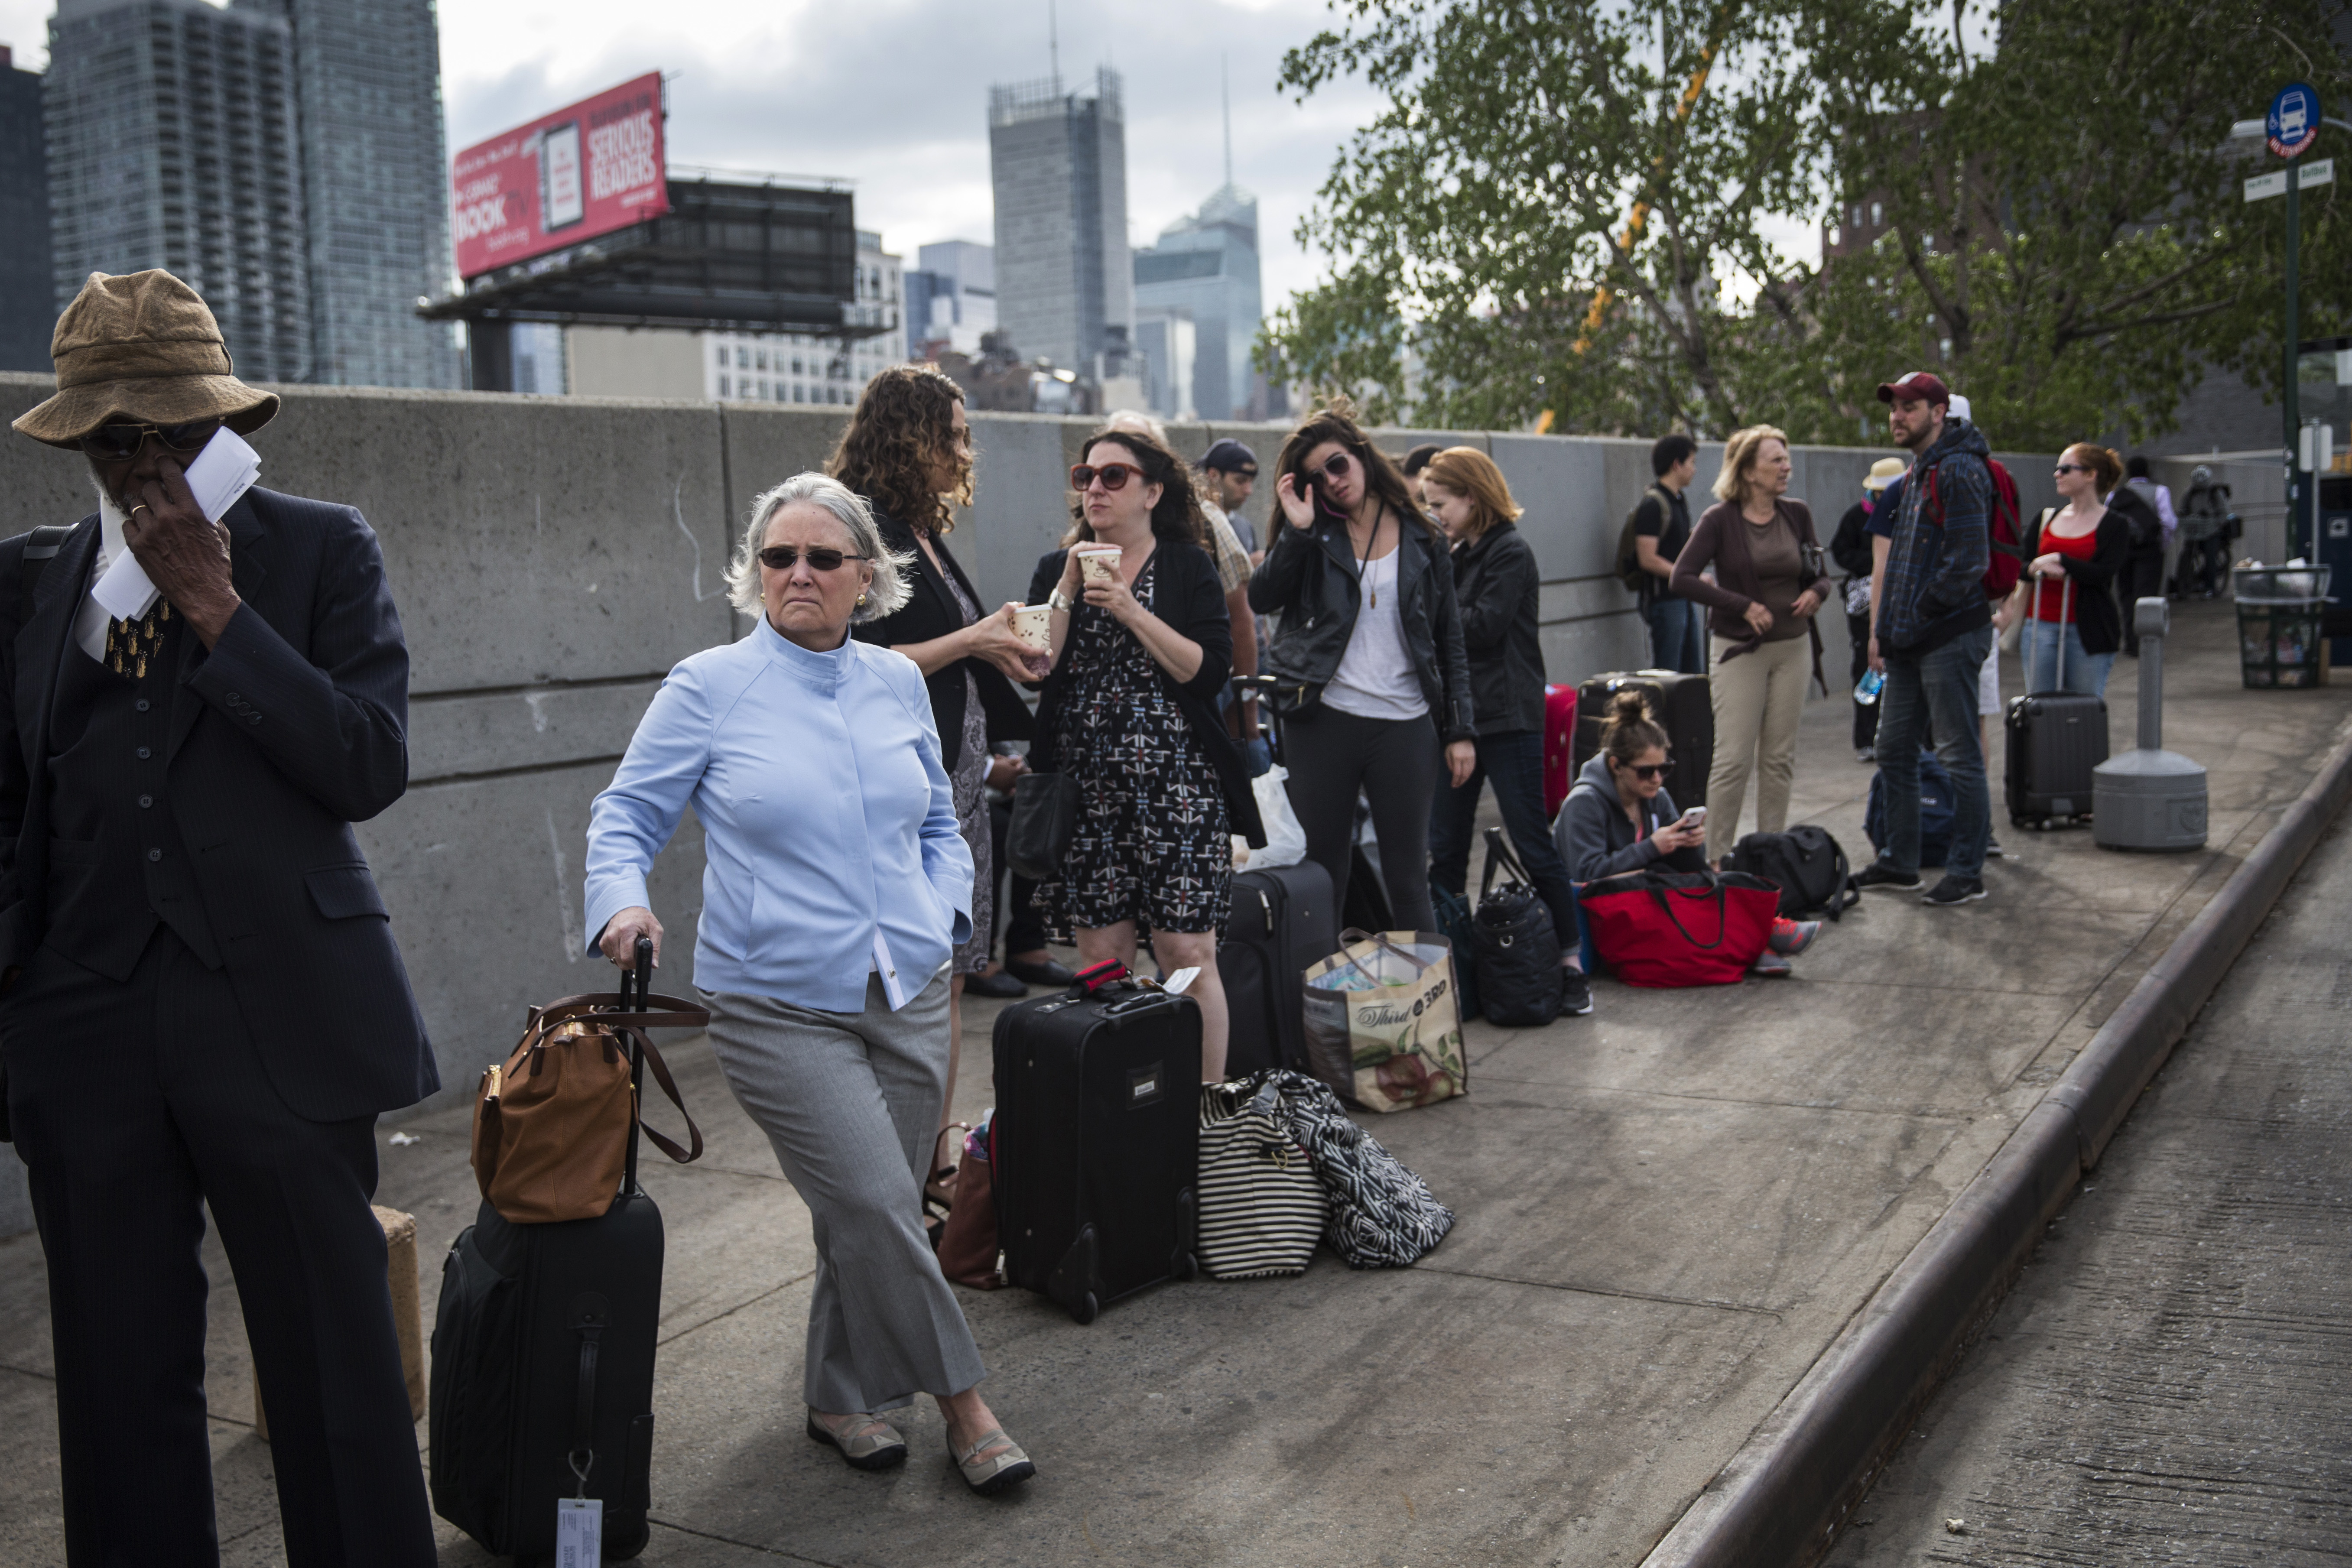 Passengers wait for a bus from New York to Washington D.C. on Wednesday in New York City after an Amtrak train crash in Philadelphia forced train service to be suspended between New York, Philadelphia and Washington D.C.